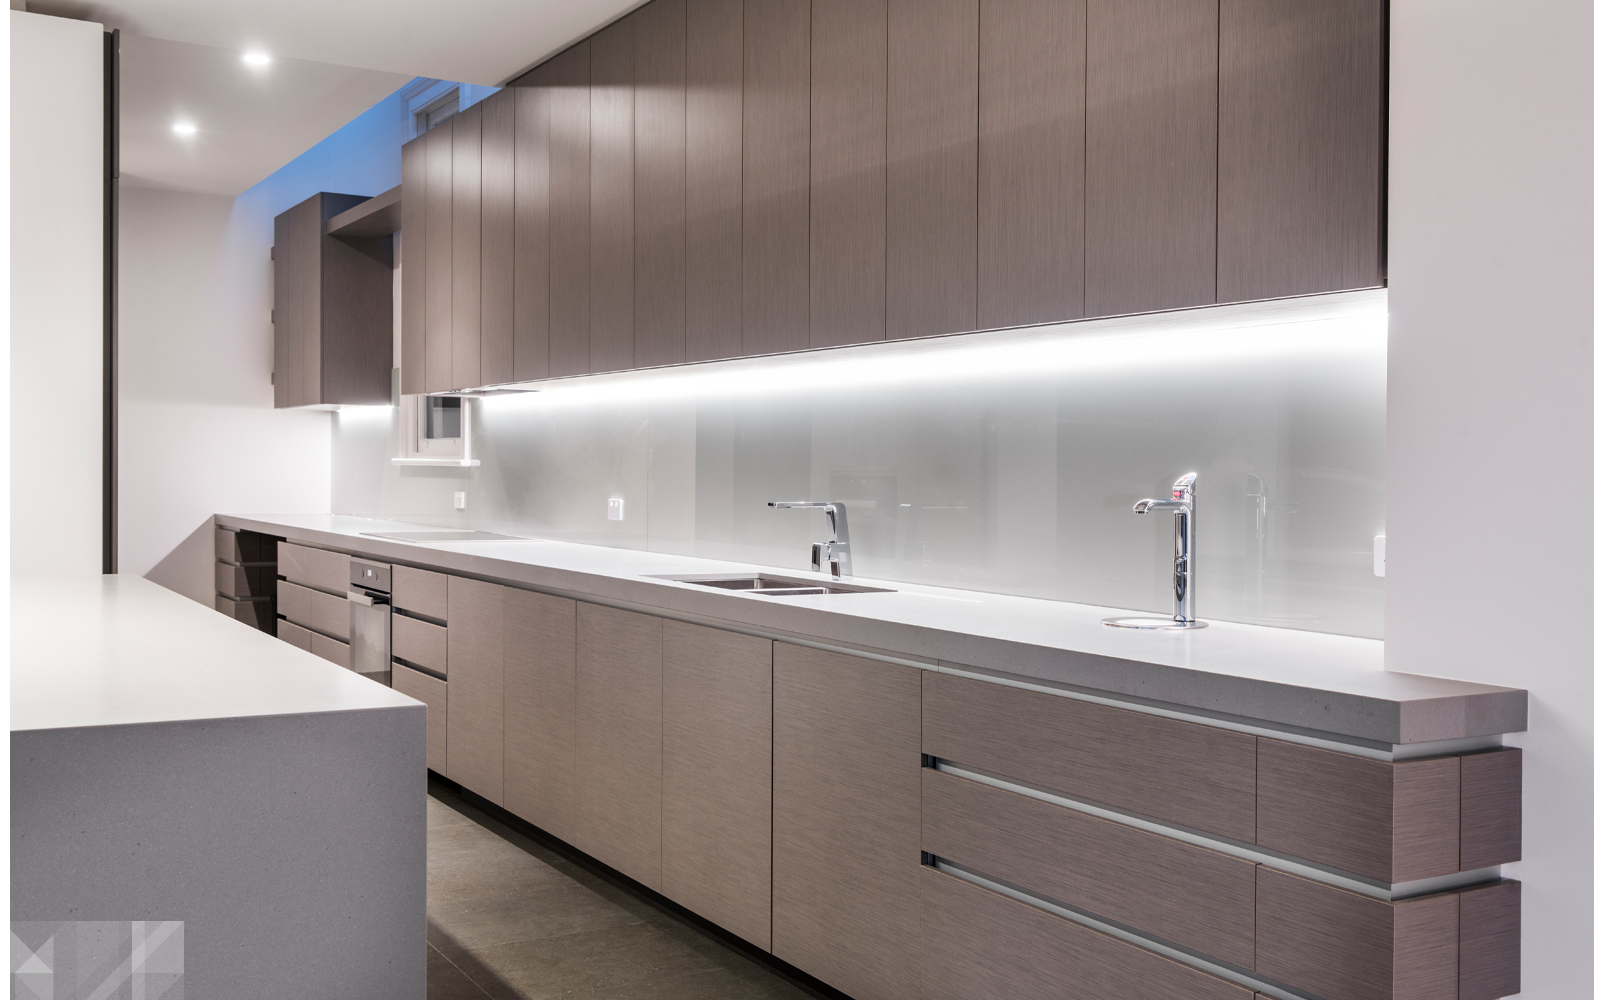 maek-luxury-home-design-inspiration-jolimont-kitchen-benchtop-9.jpg